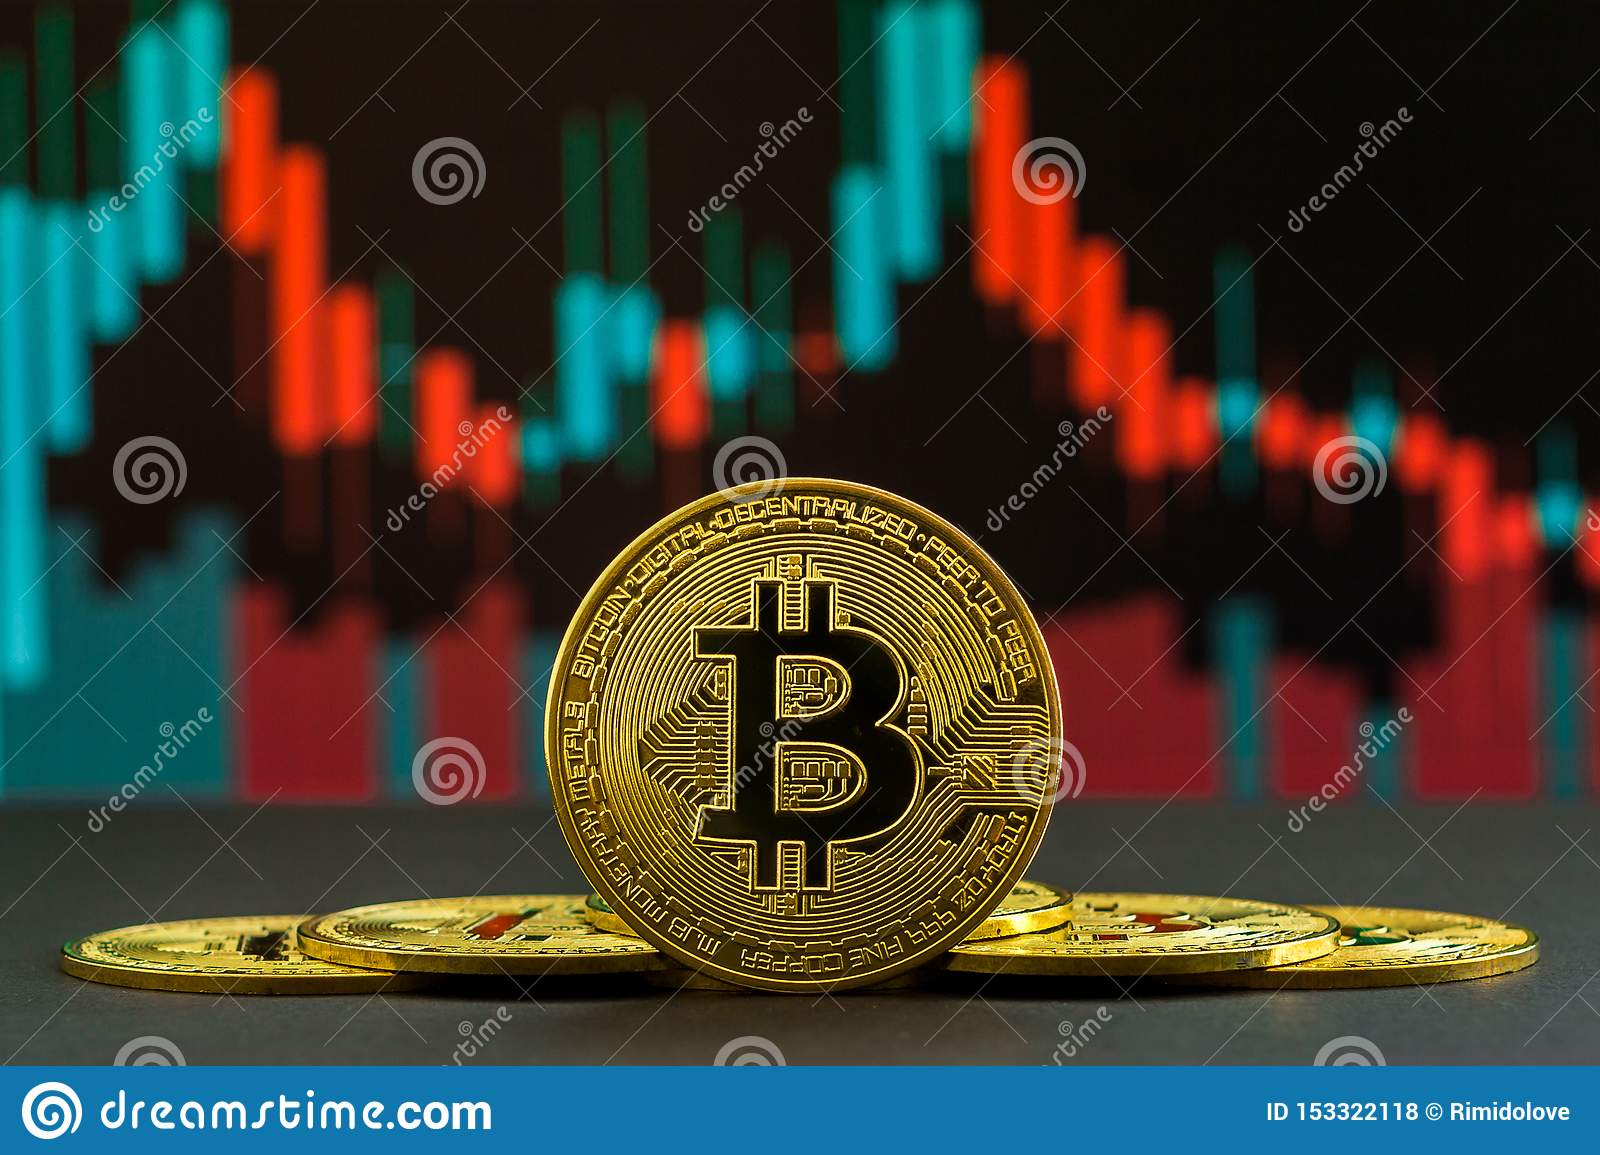 successful binary option traders in nigeria crypto trading red candles